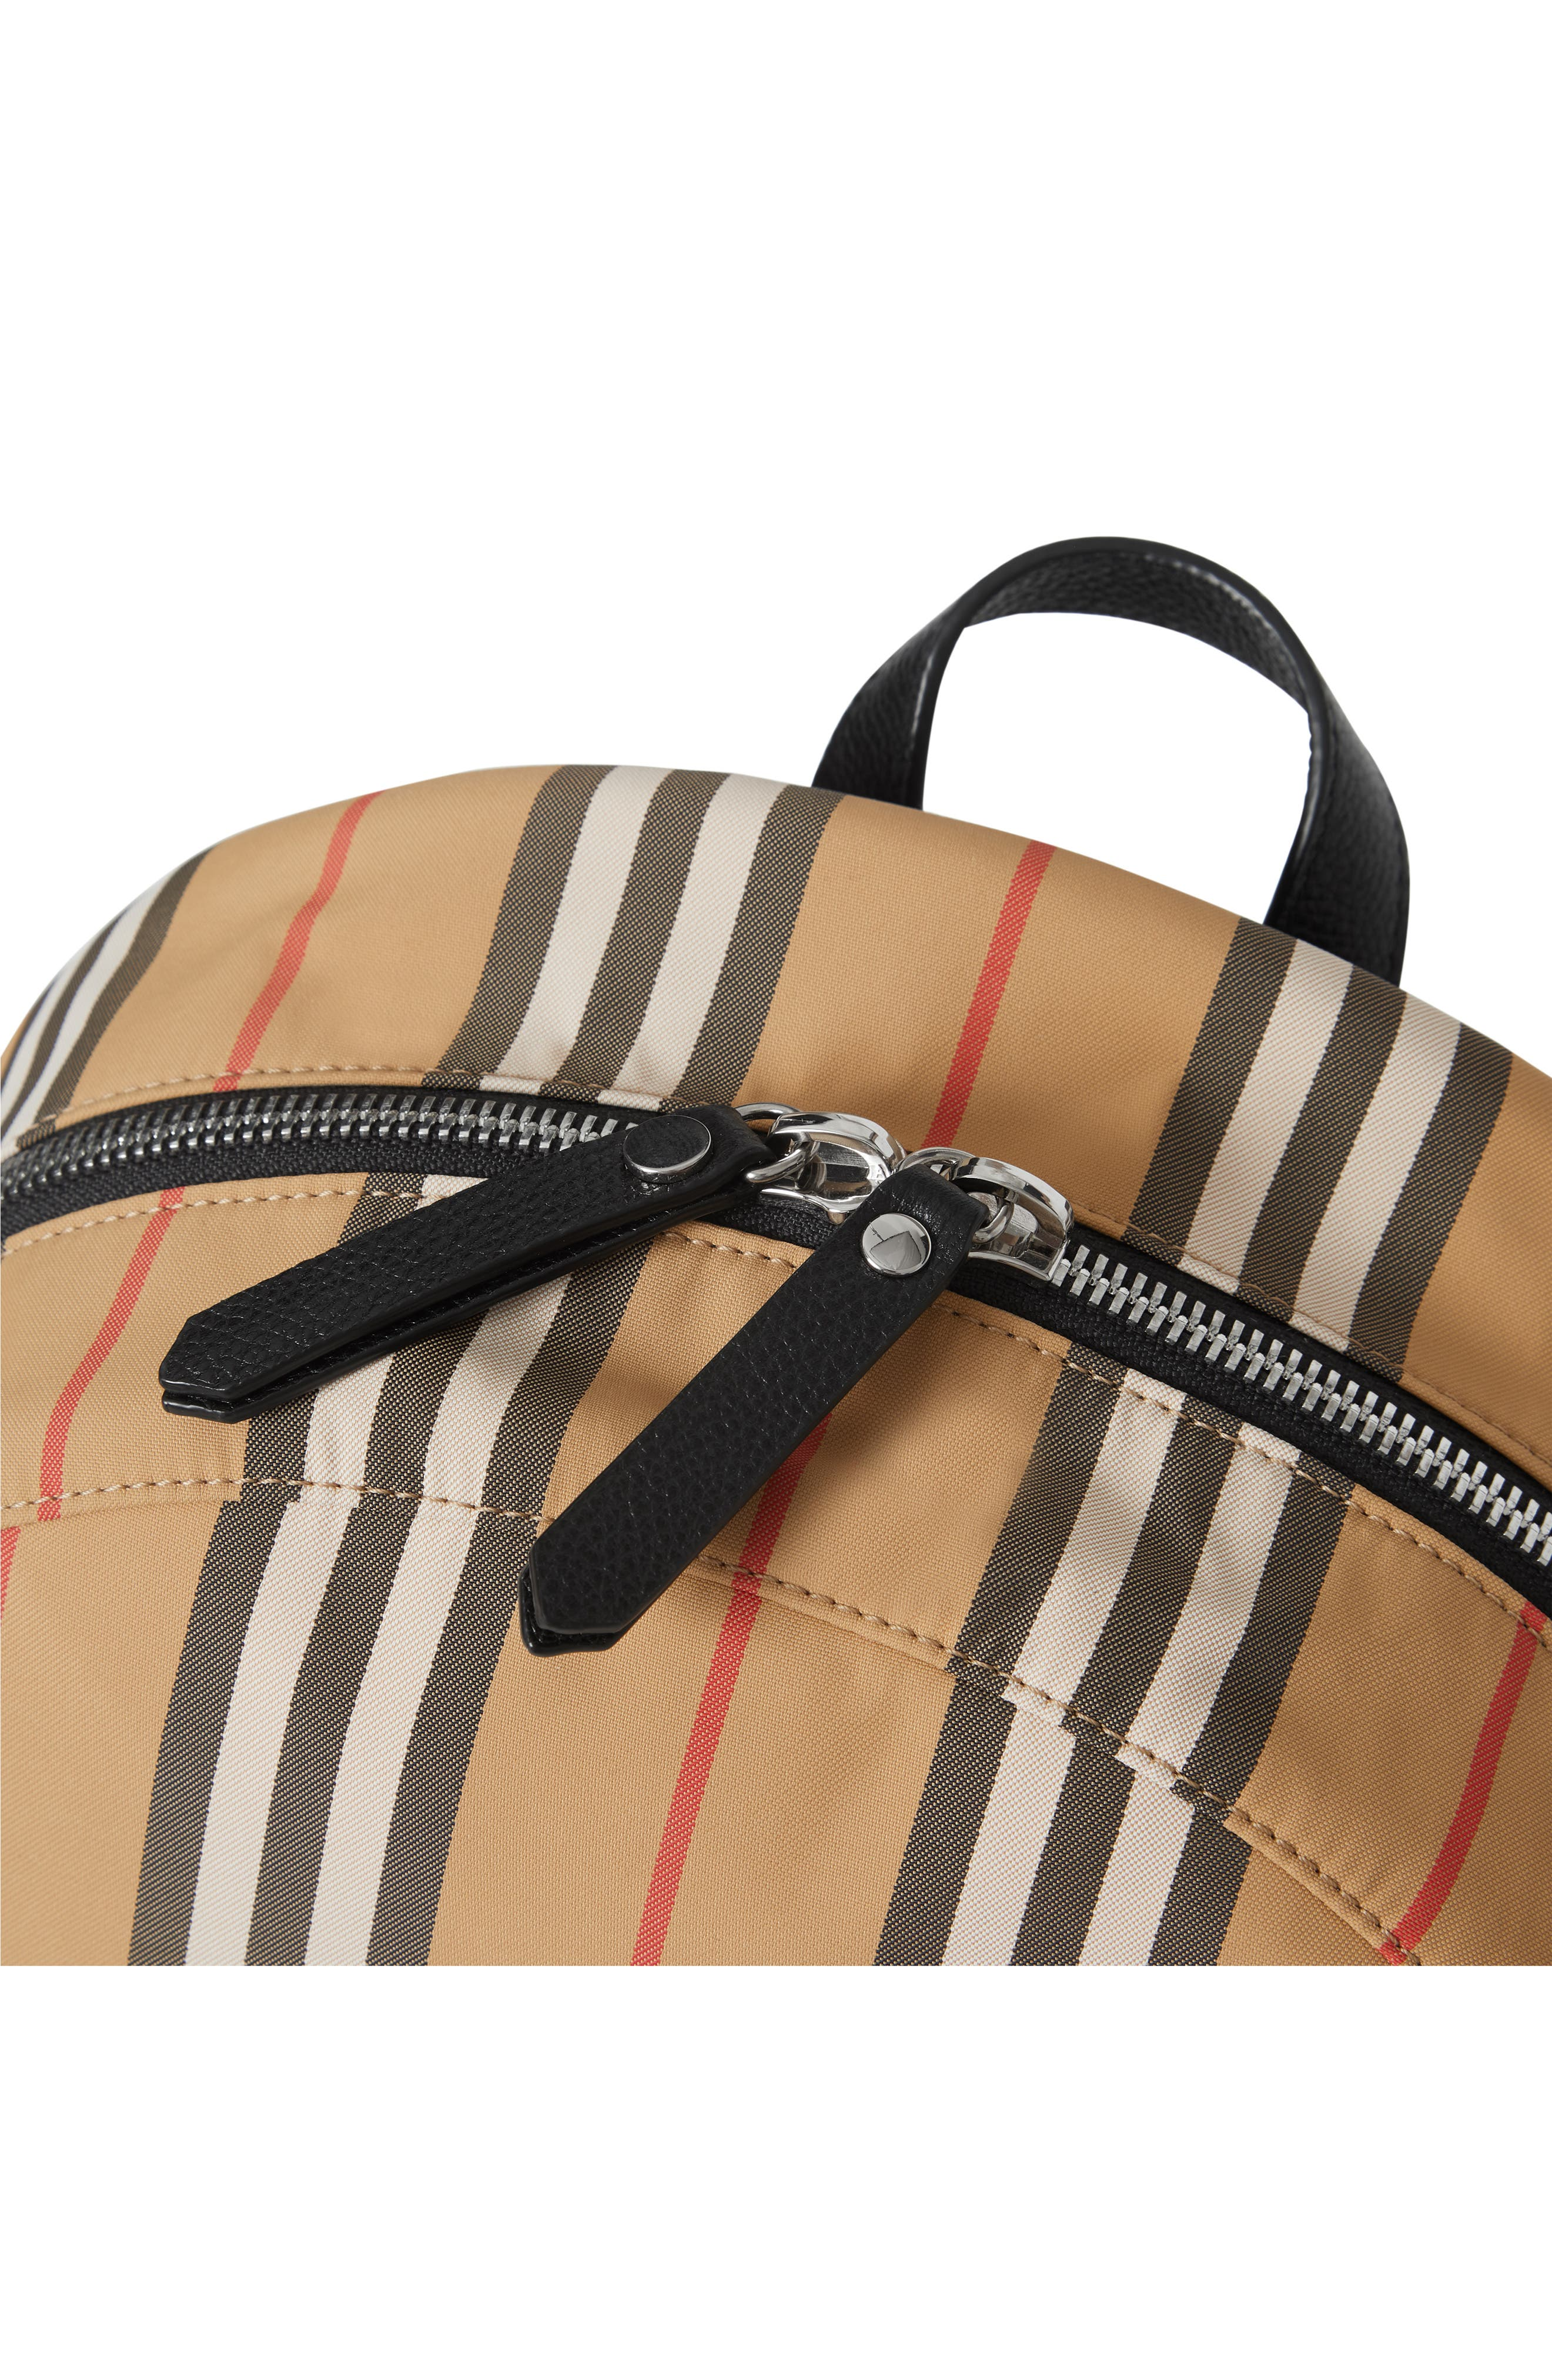 BURBERRY, Nico Archive Stripe Backpack, Alternate thumbnail 5, color, ARCHIVE BEIGE